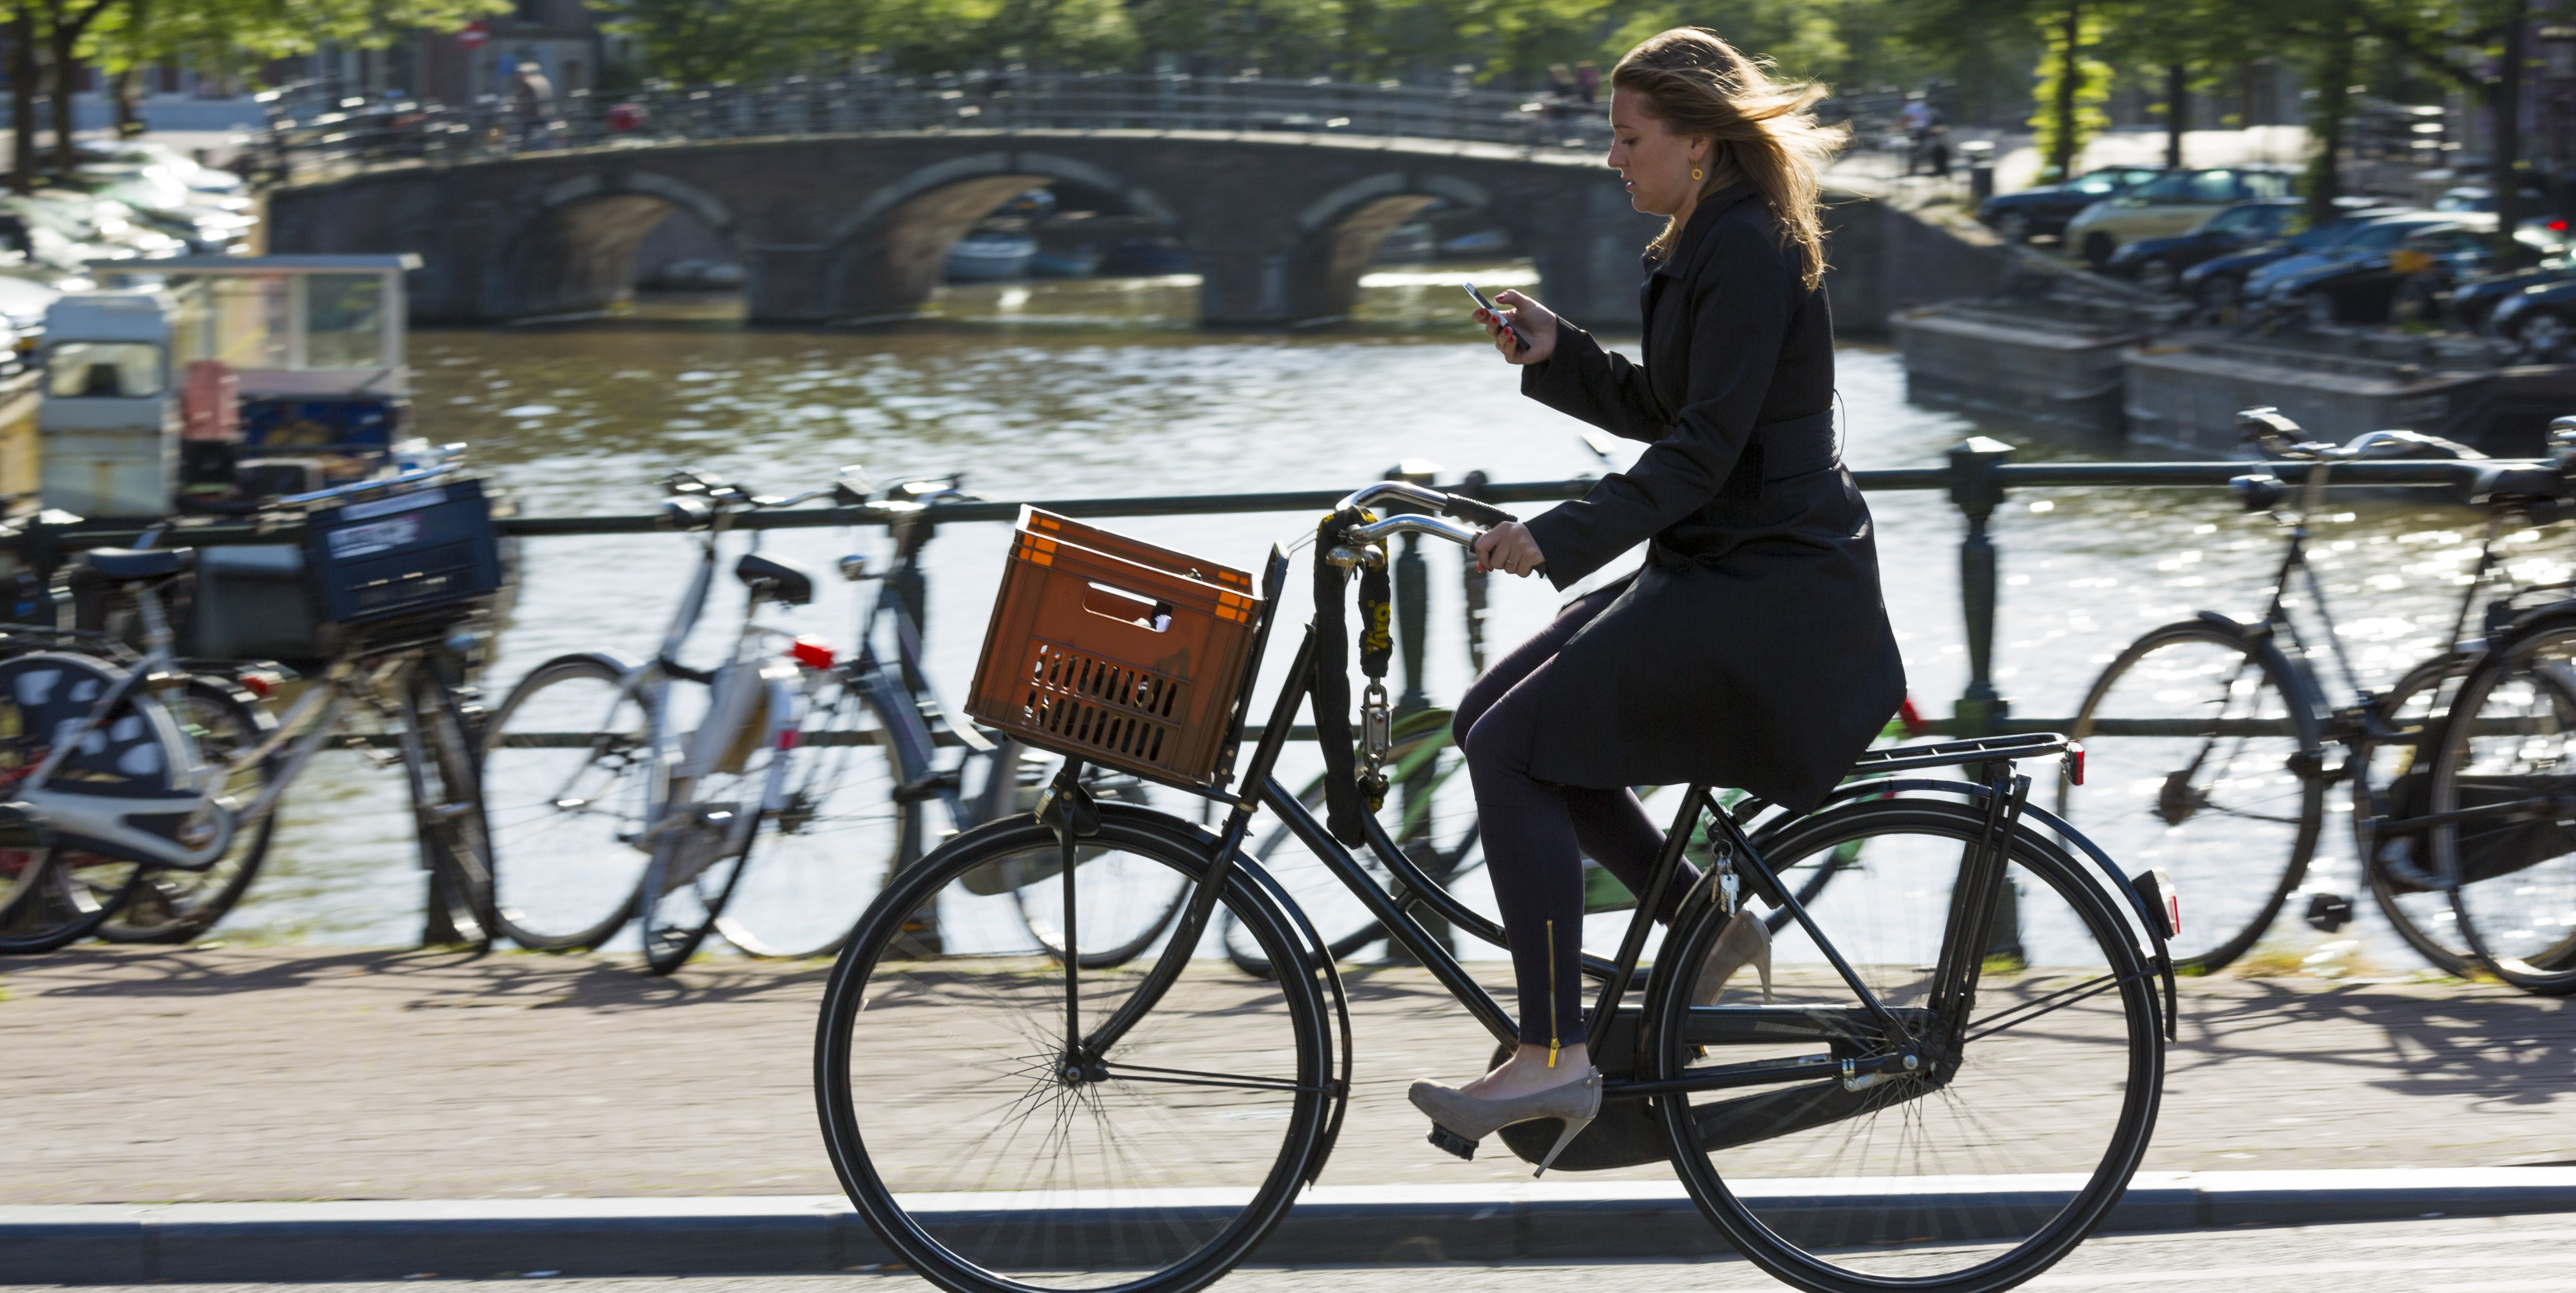 Young Woman Cycling on Bridge in Amsterdam, Holland